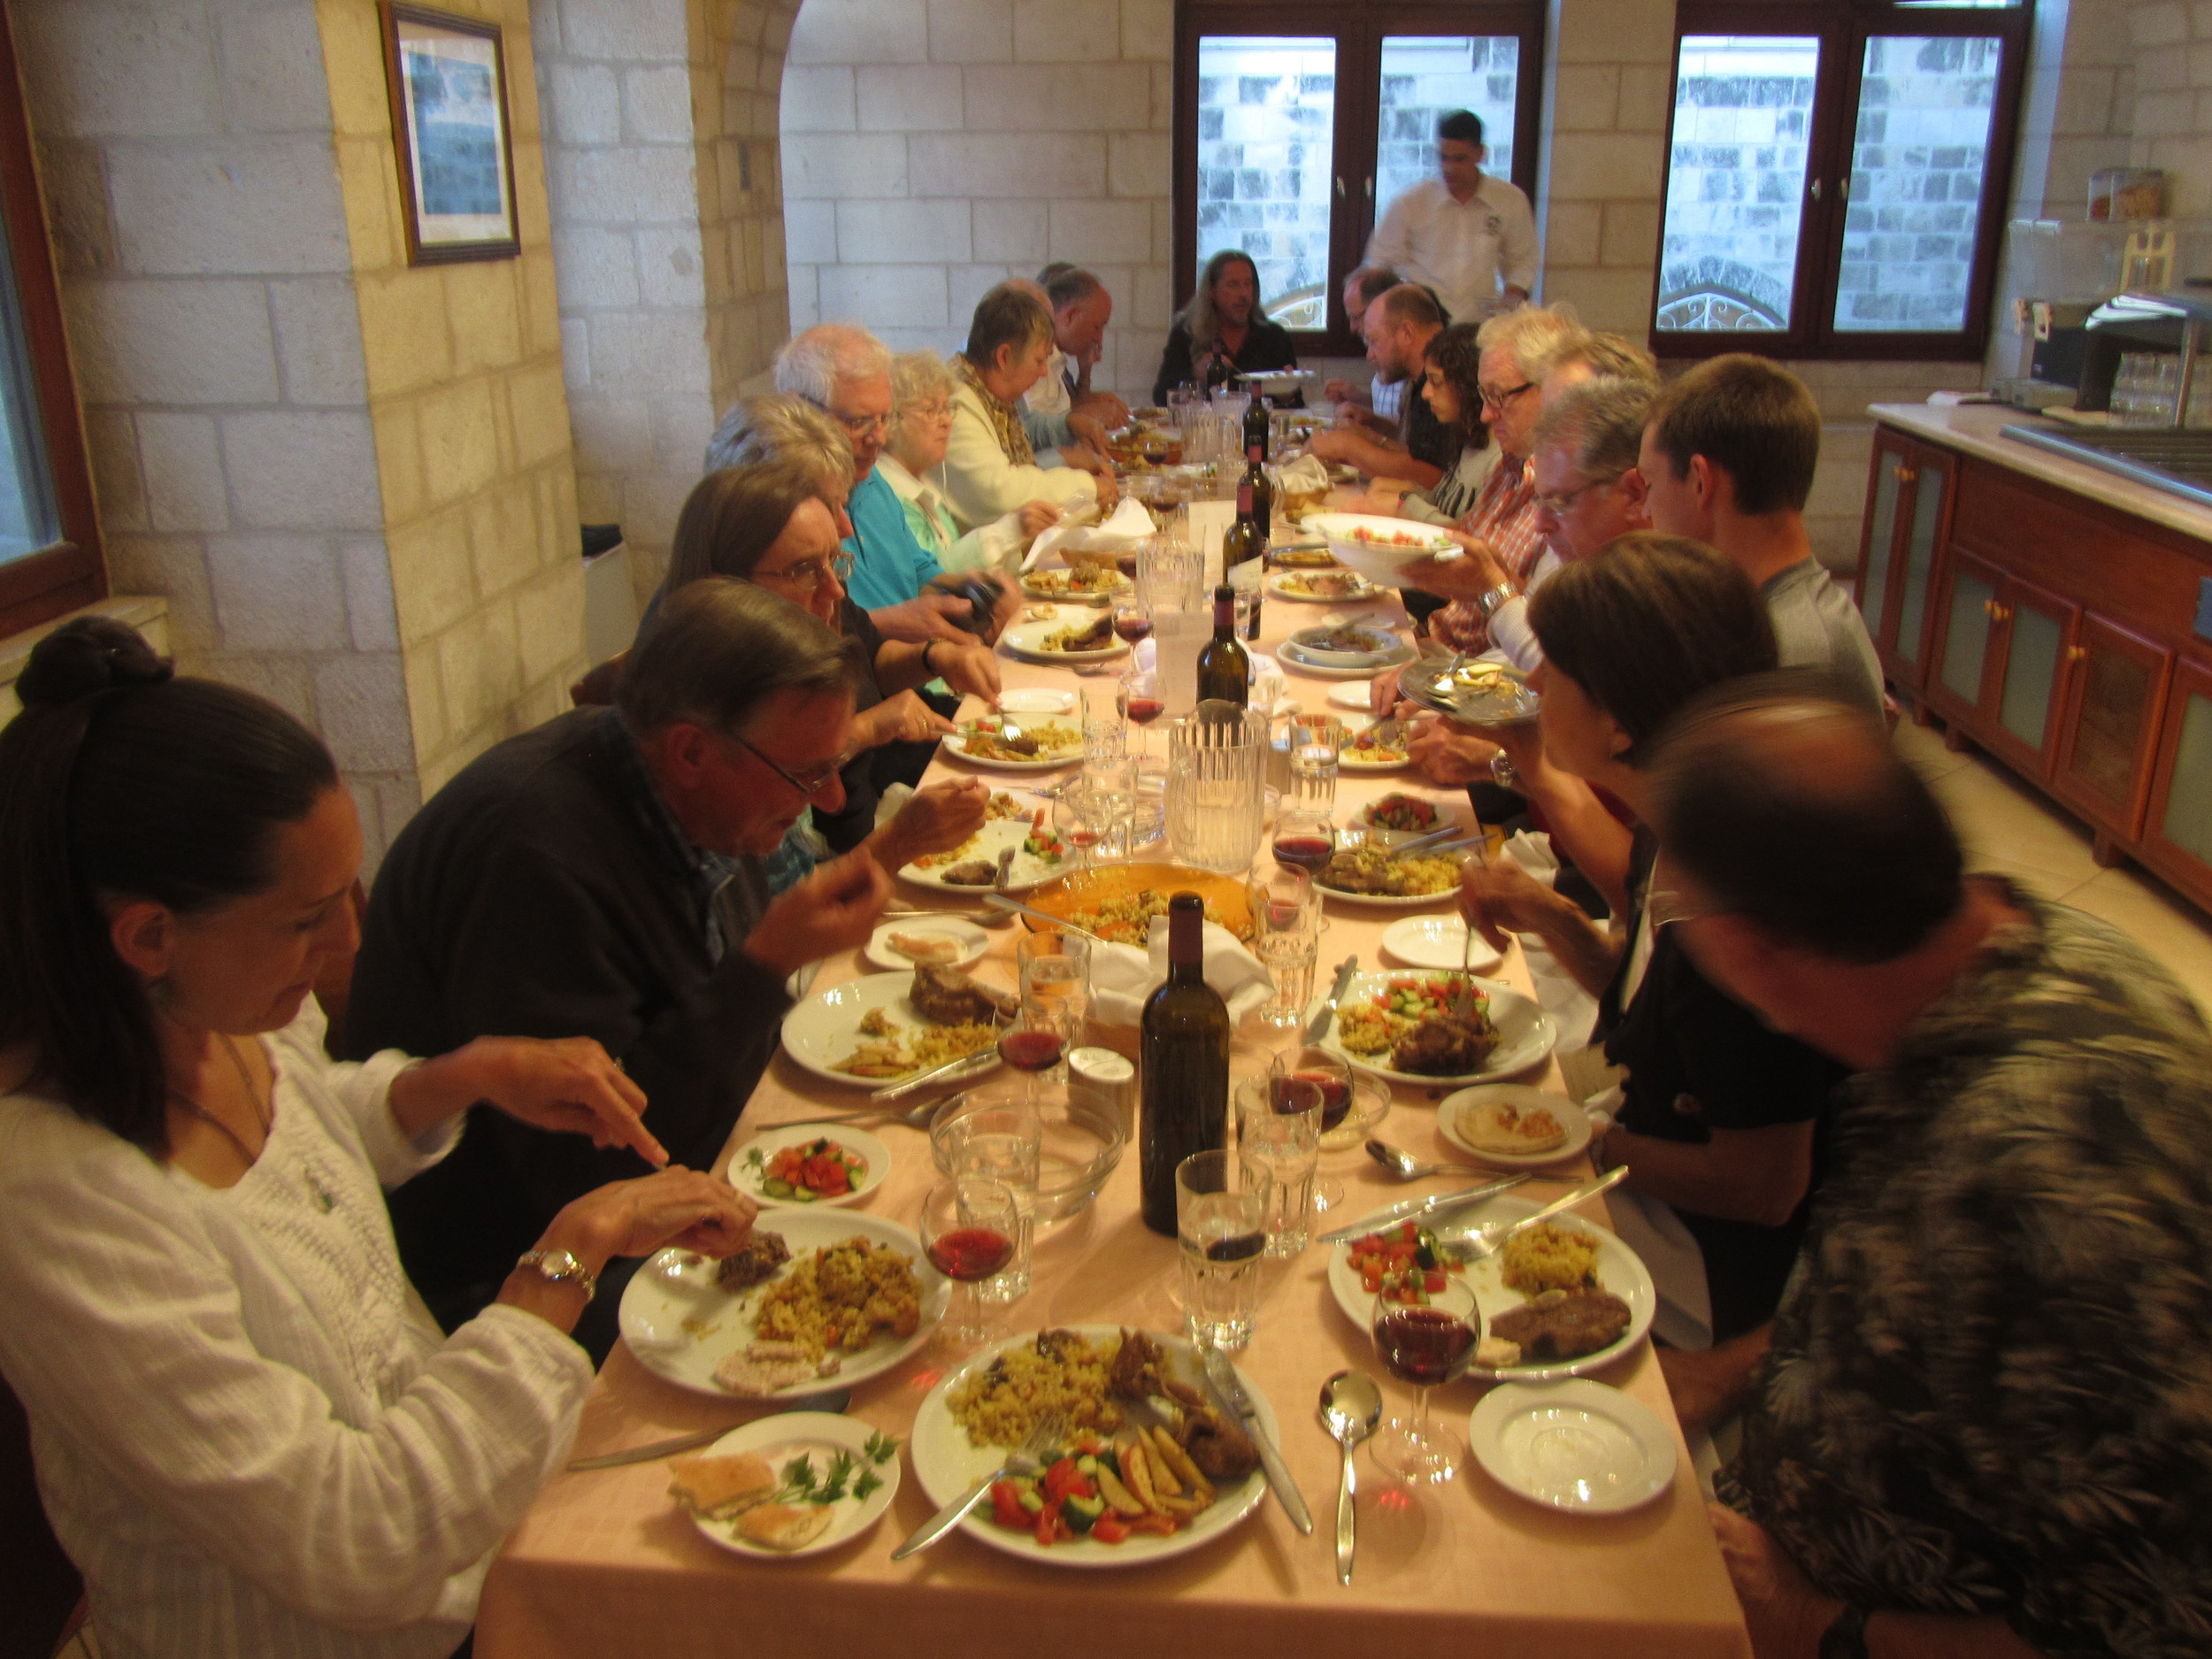 Our Passover dinner at the Lutheran Guesthouse